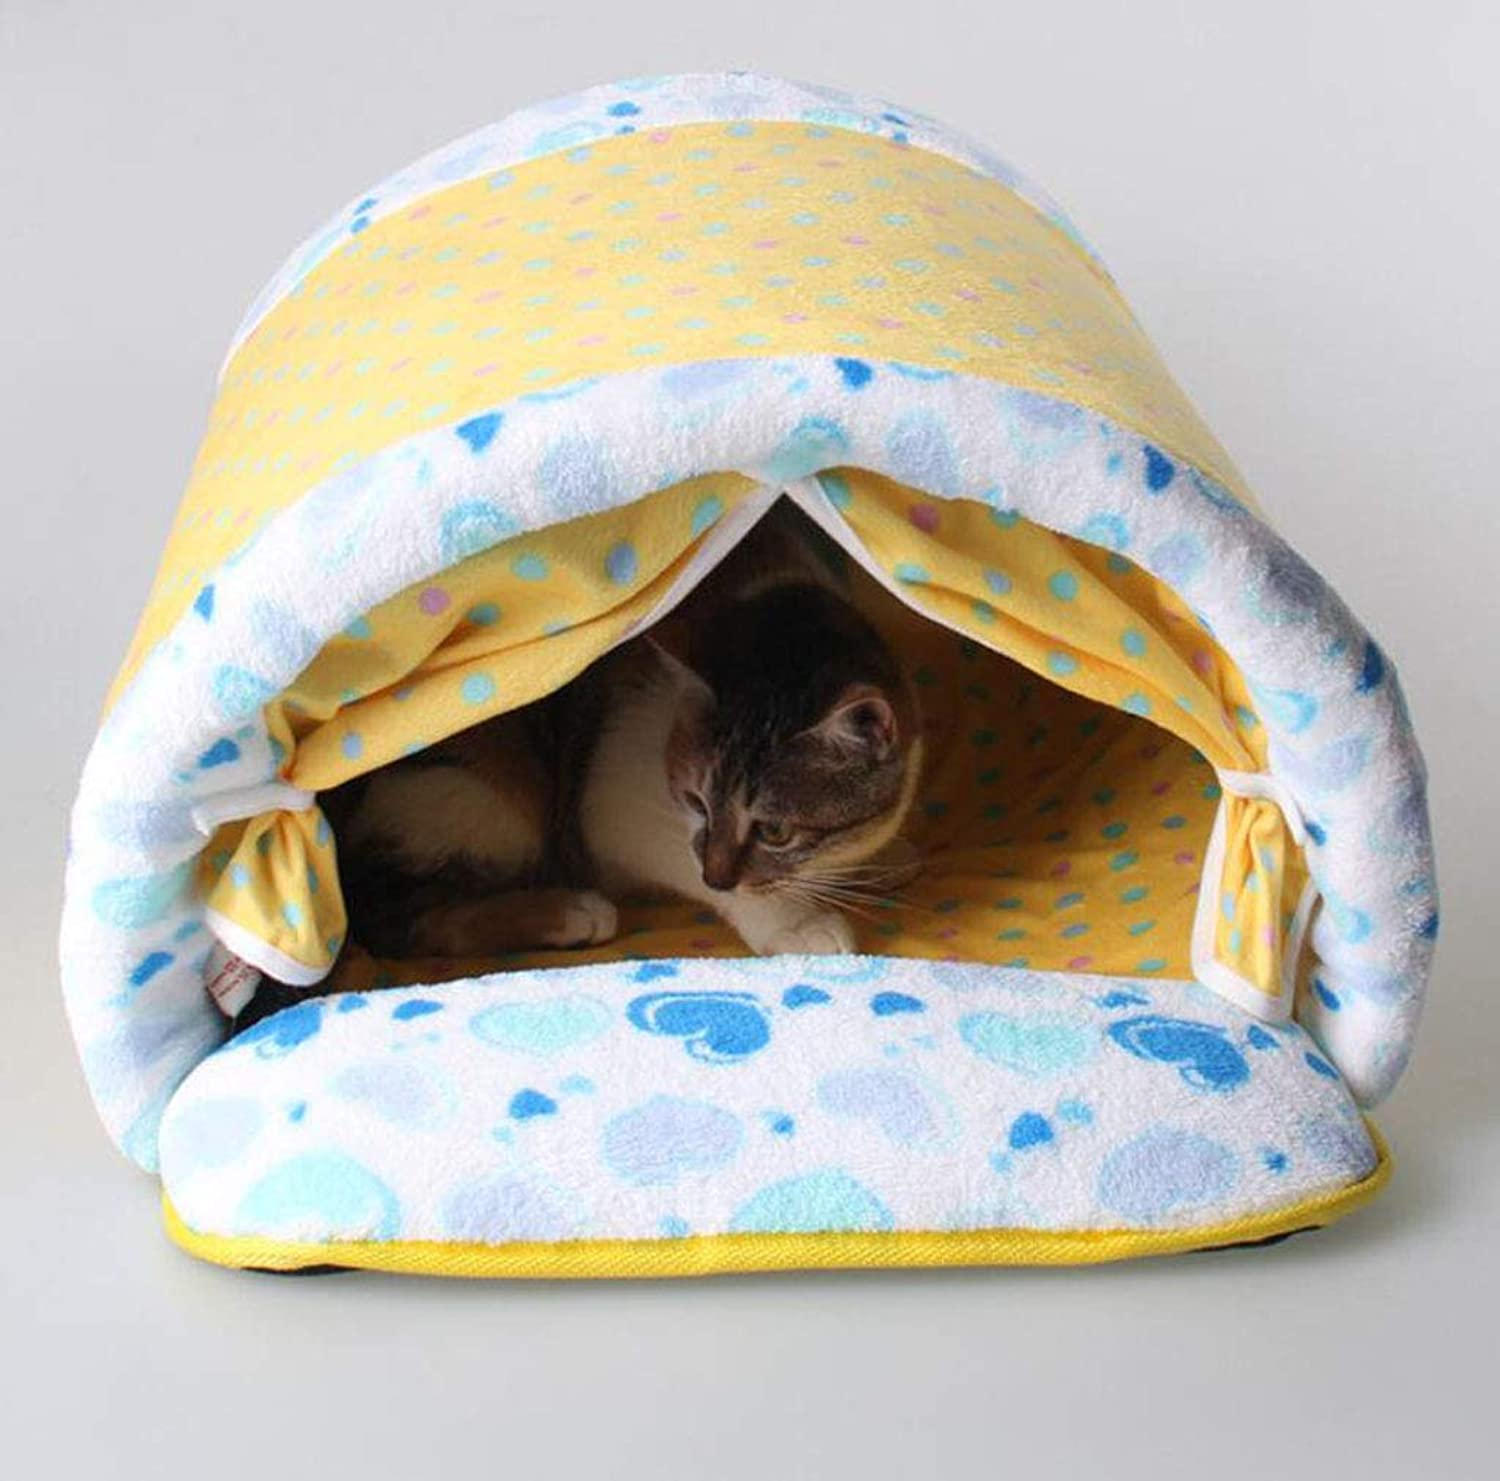 Cat Litter, Cotton Cat, Squat, Warm Cat, Sleeping Room, Warm Kennel,Yellow